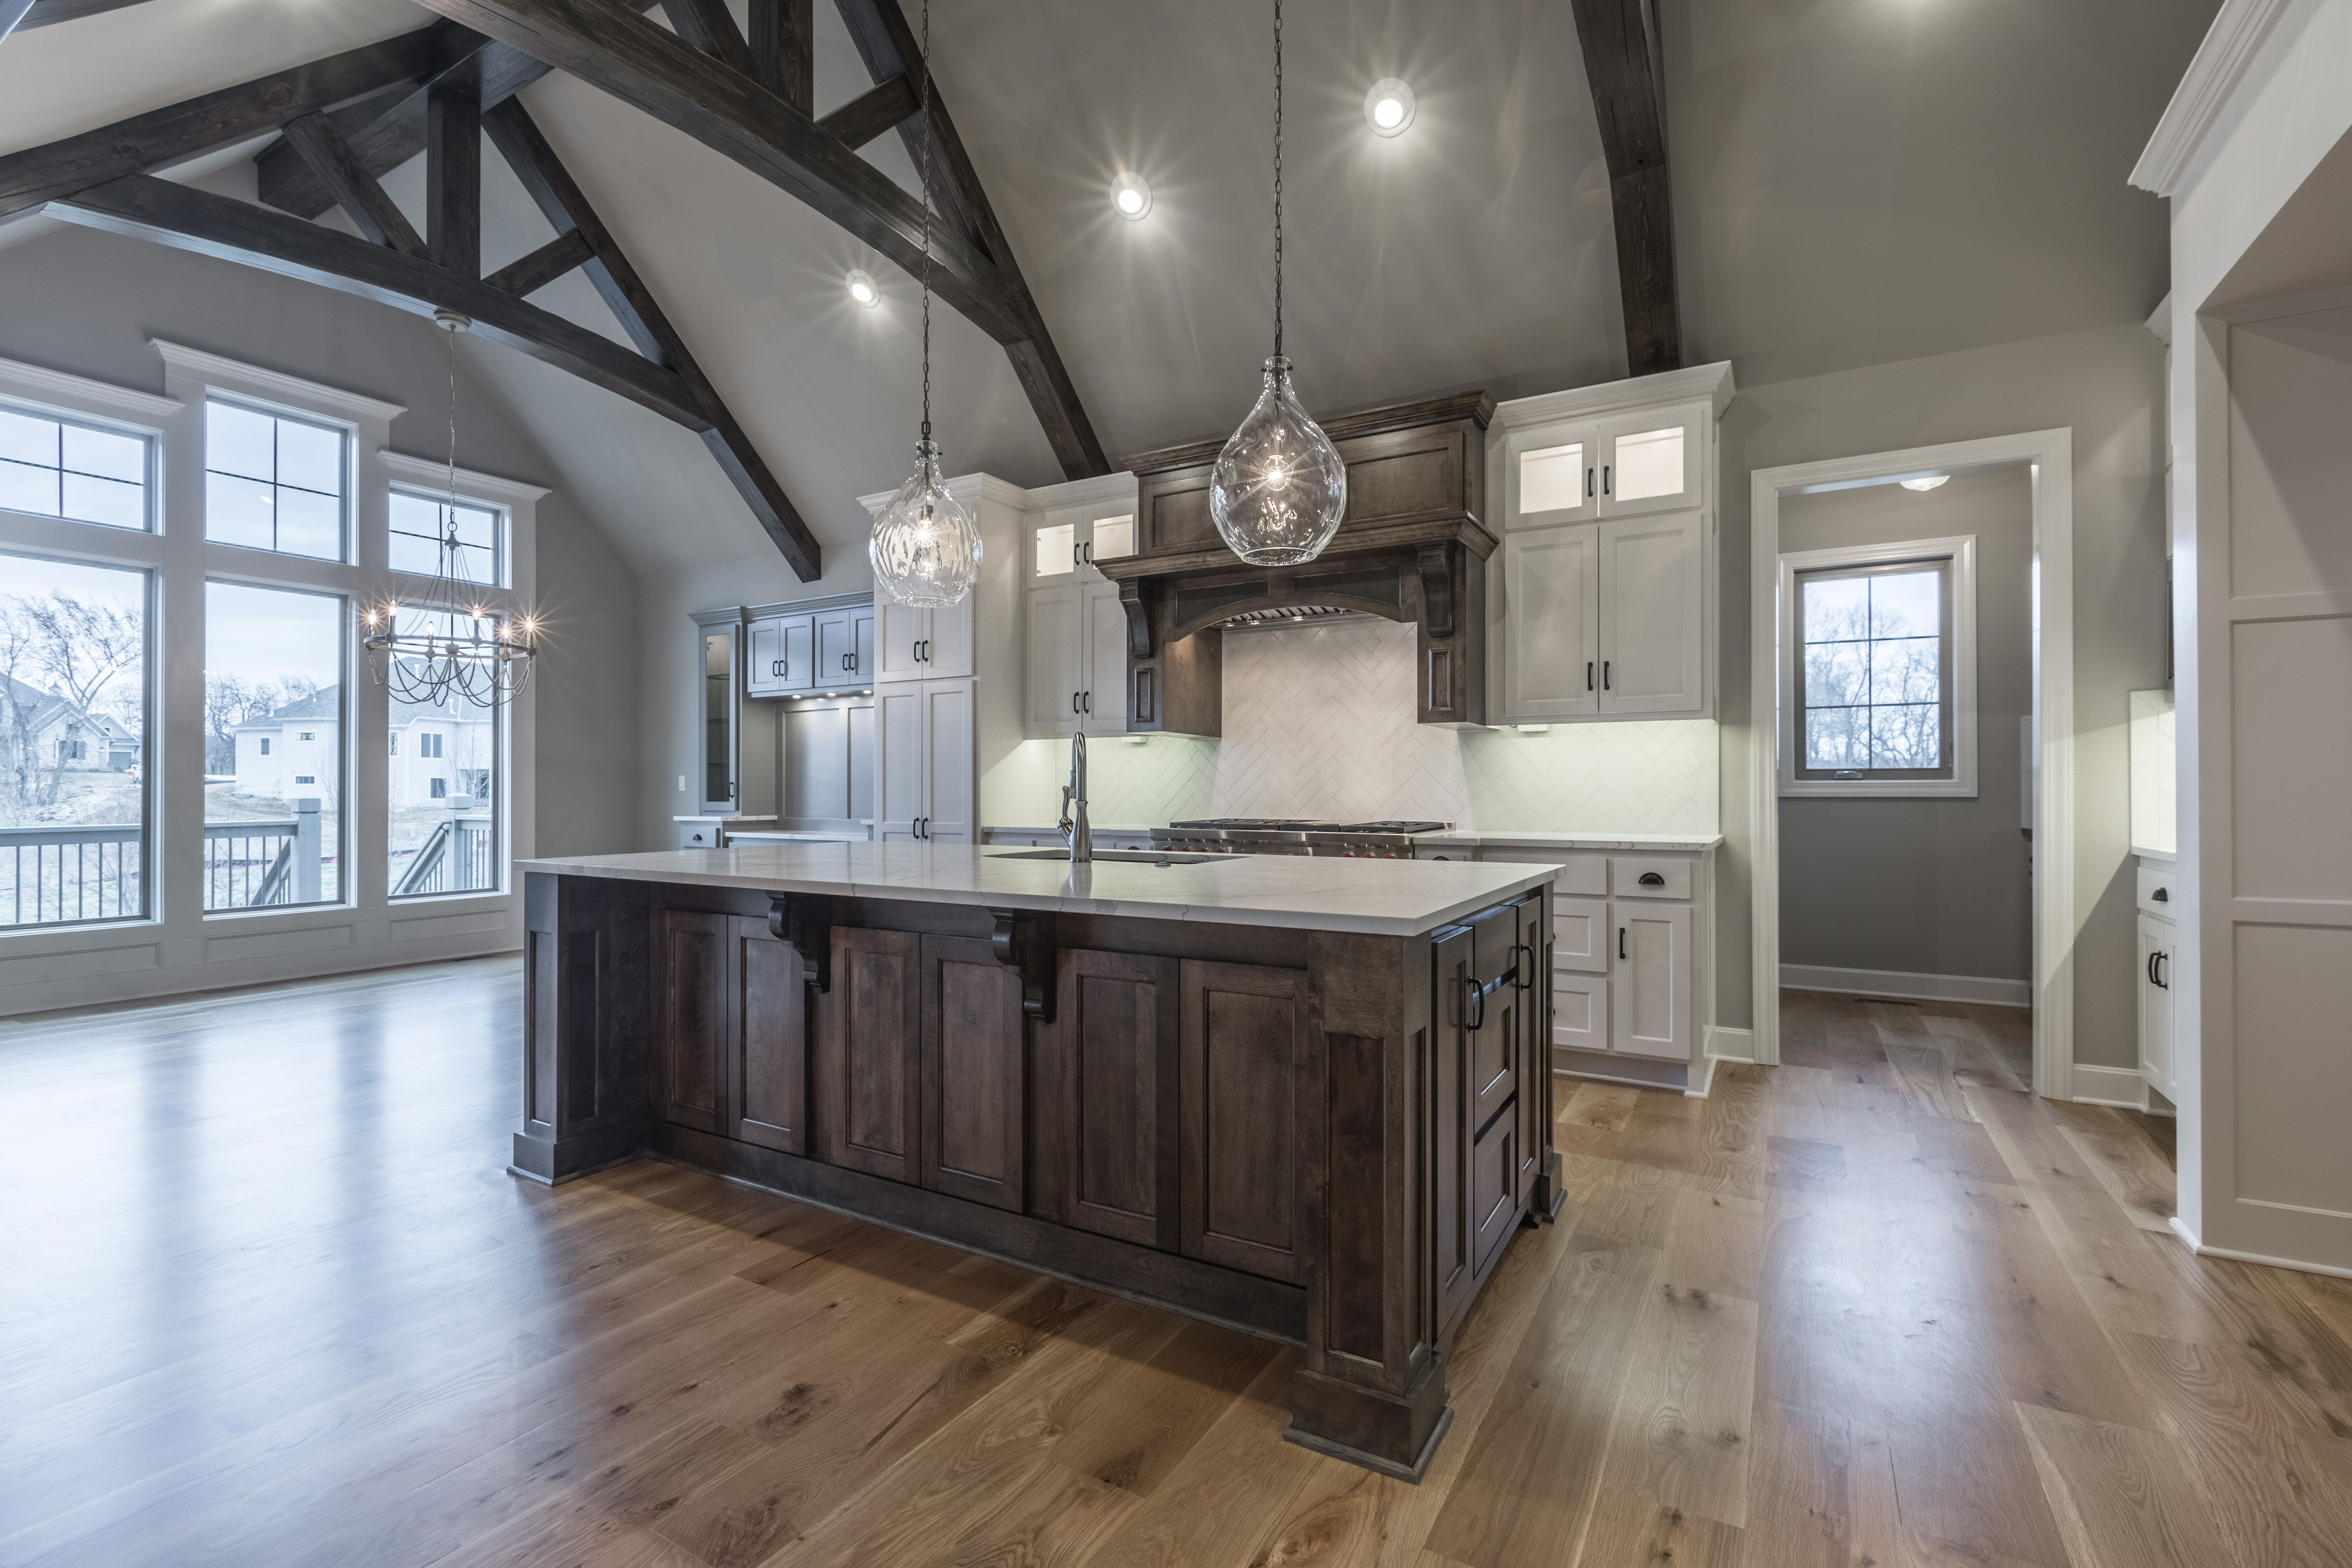 Trusses, Vaulted Ceiling, Painted Cabinets, Light Fixtures ...